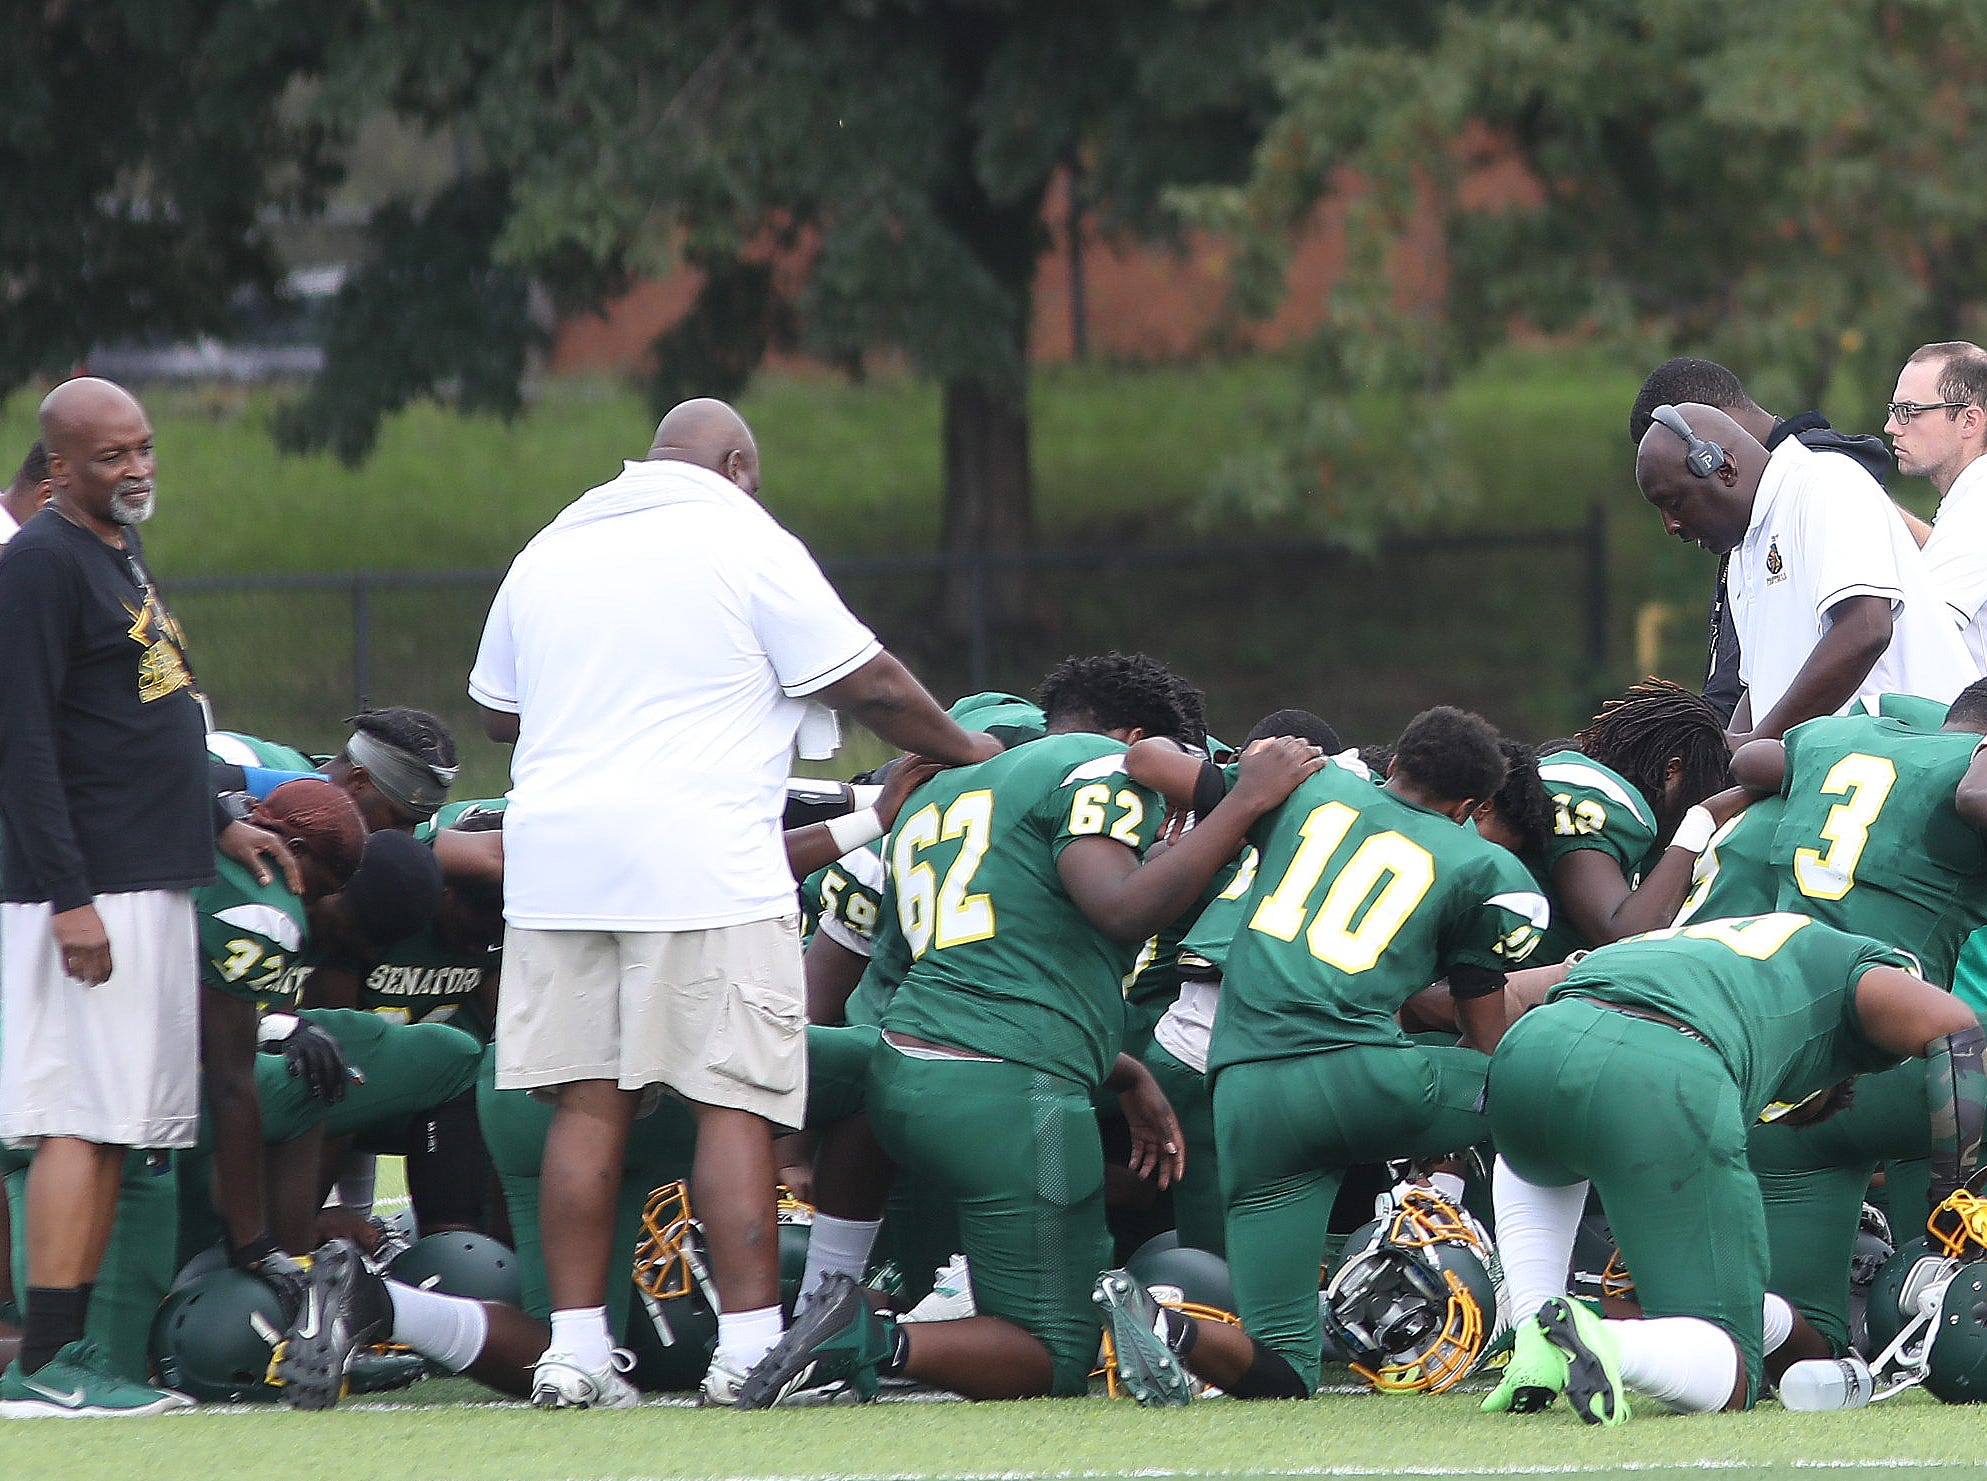 Taft's  football team gathers before their football game against Wyoming , Saturday , Sept. 1, 2018.